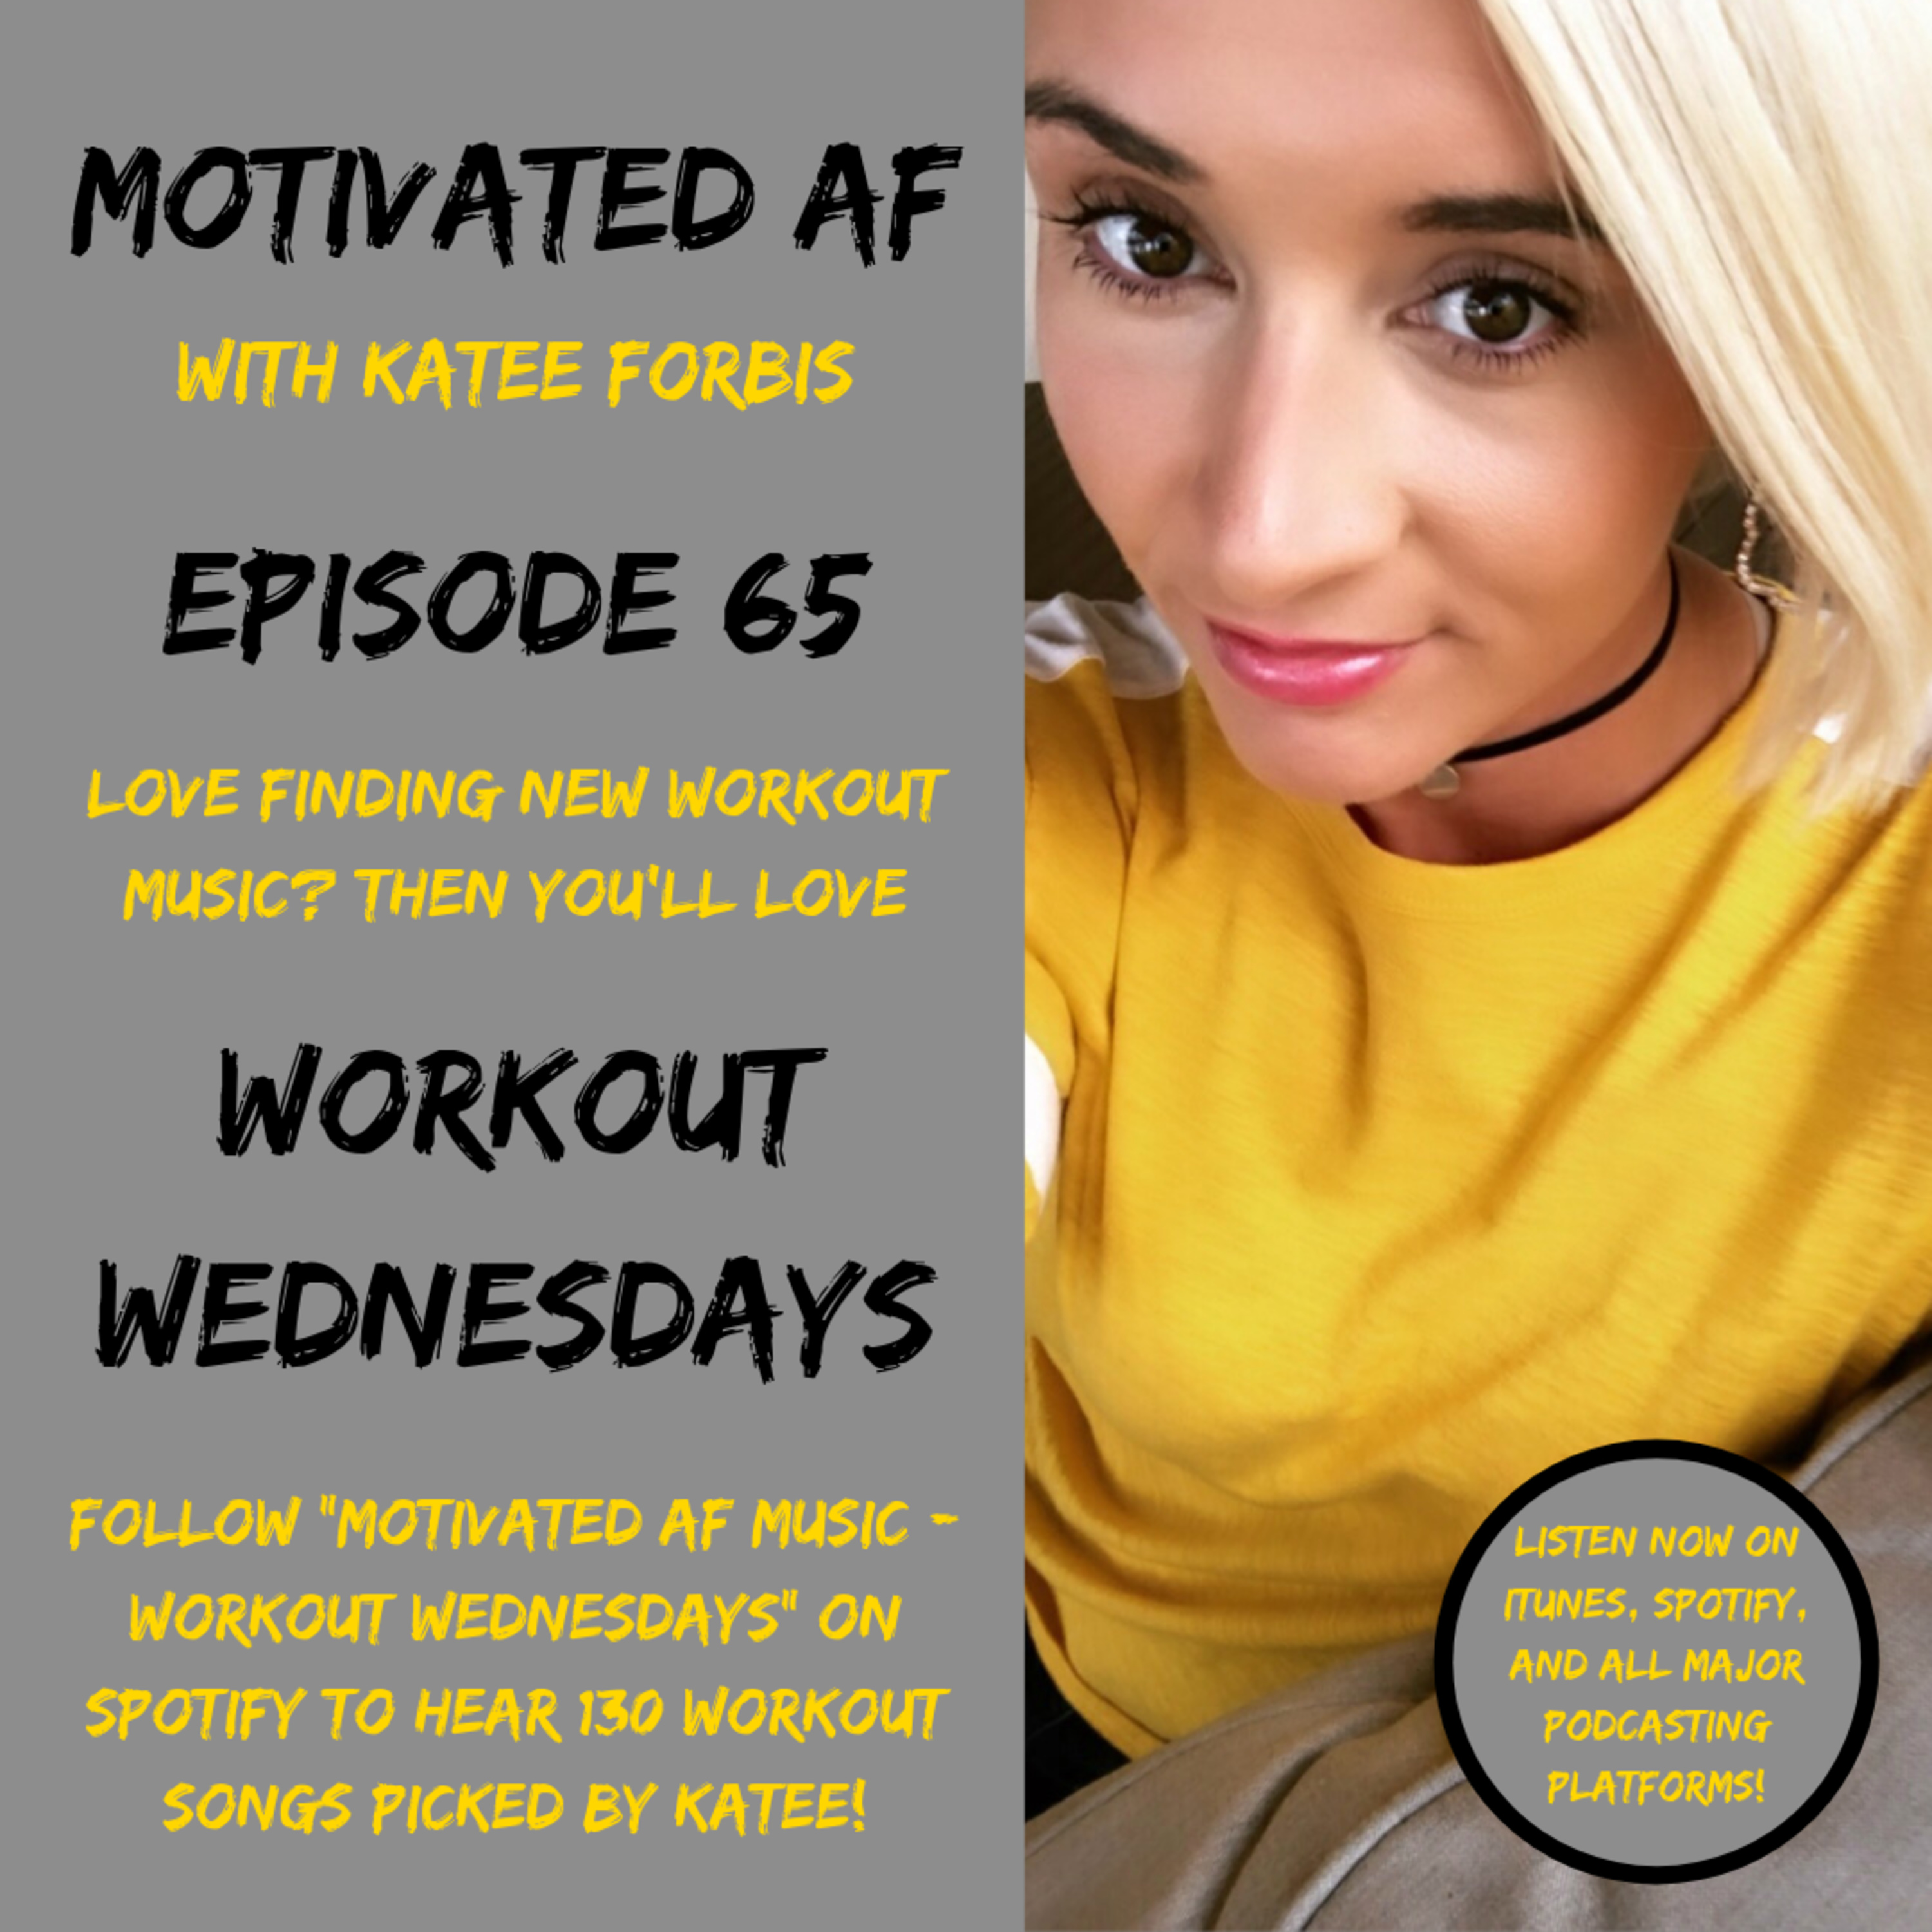 Ep. 65 - Workout Wednesdays: April 17, 2019 - 10 More Workout Songs!